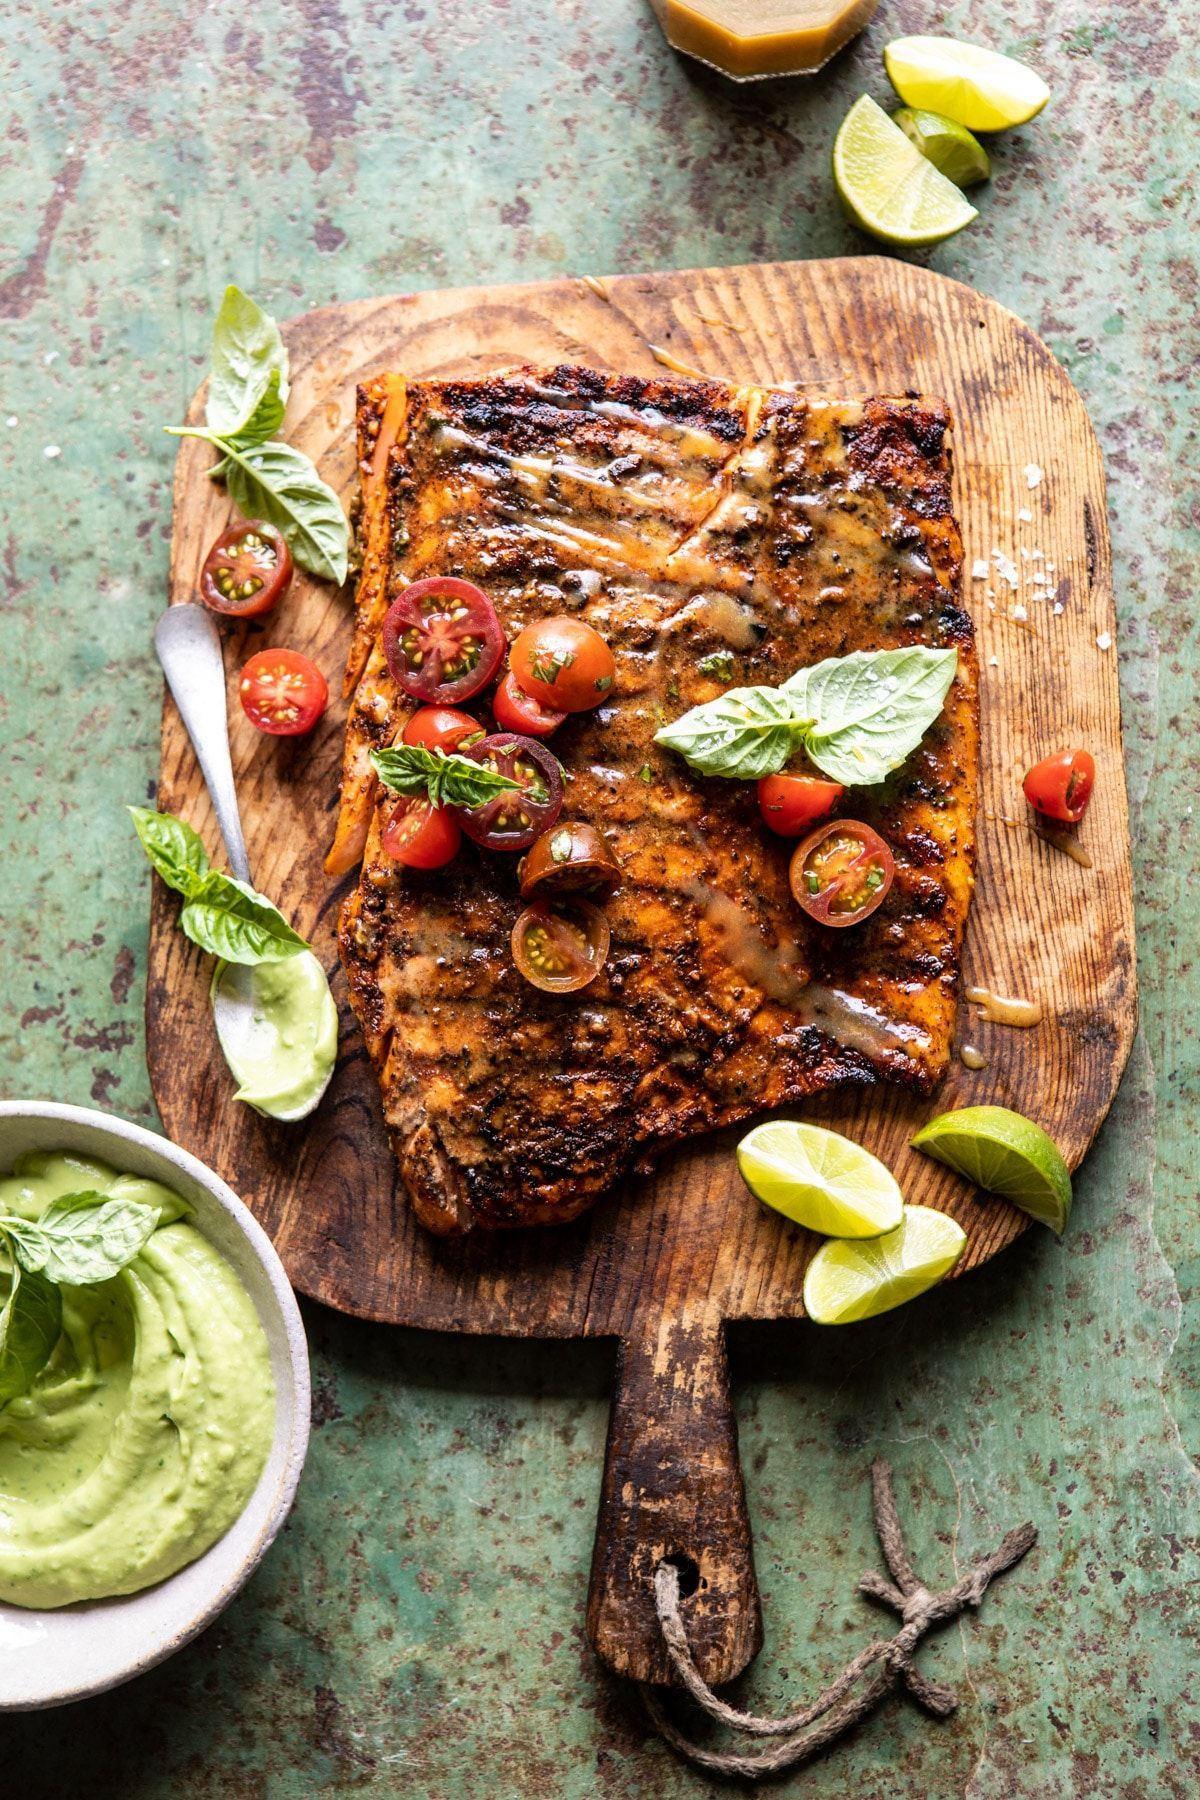 Honey Mustard Grilled Salmon with Avocado Basil Sauce.#avocado #basil #grilled #honey #mustard #salmon #sauce